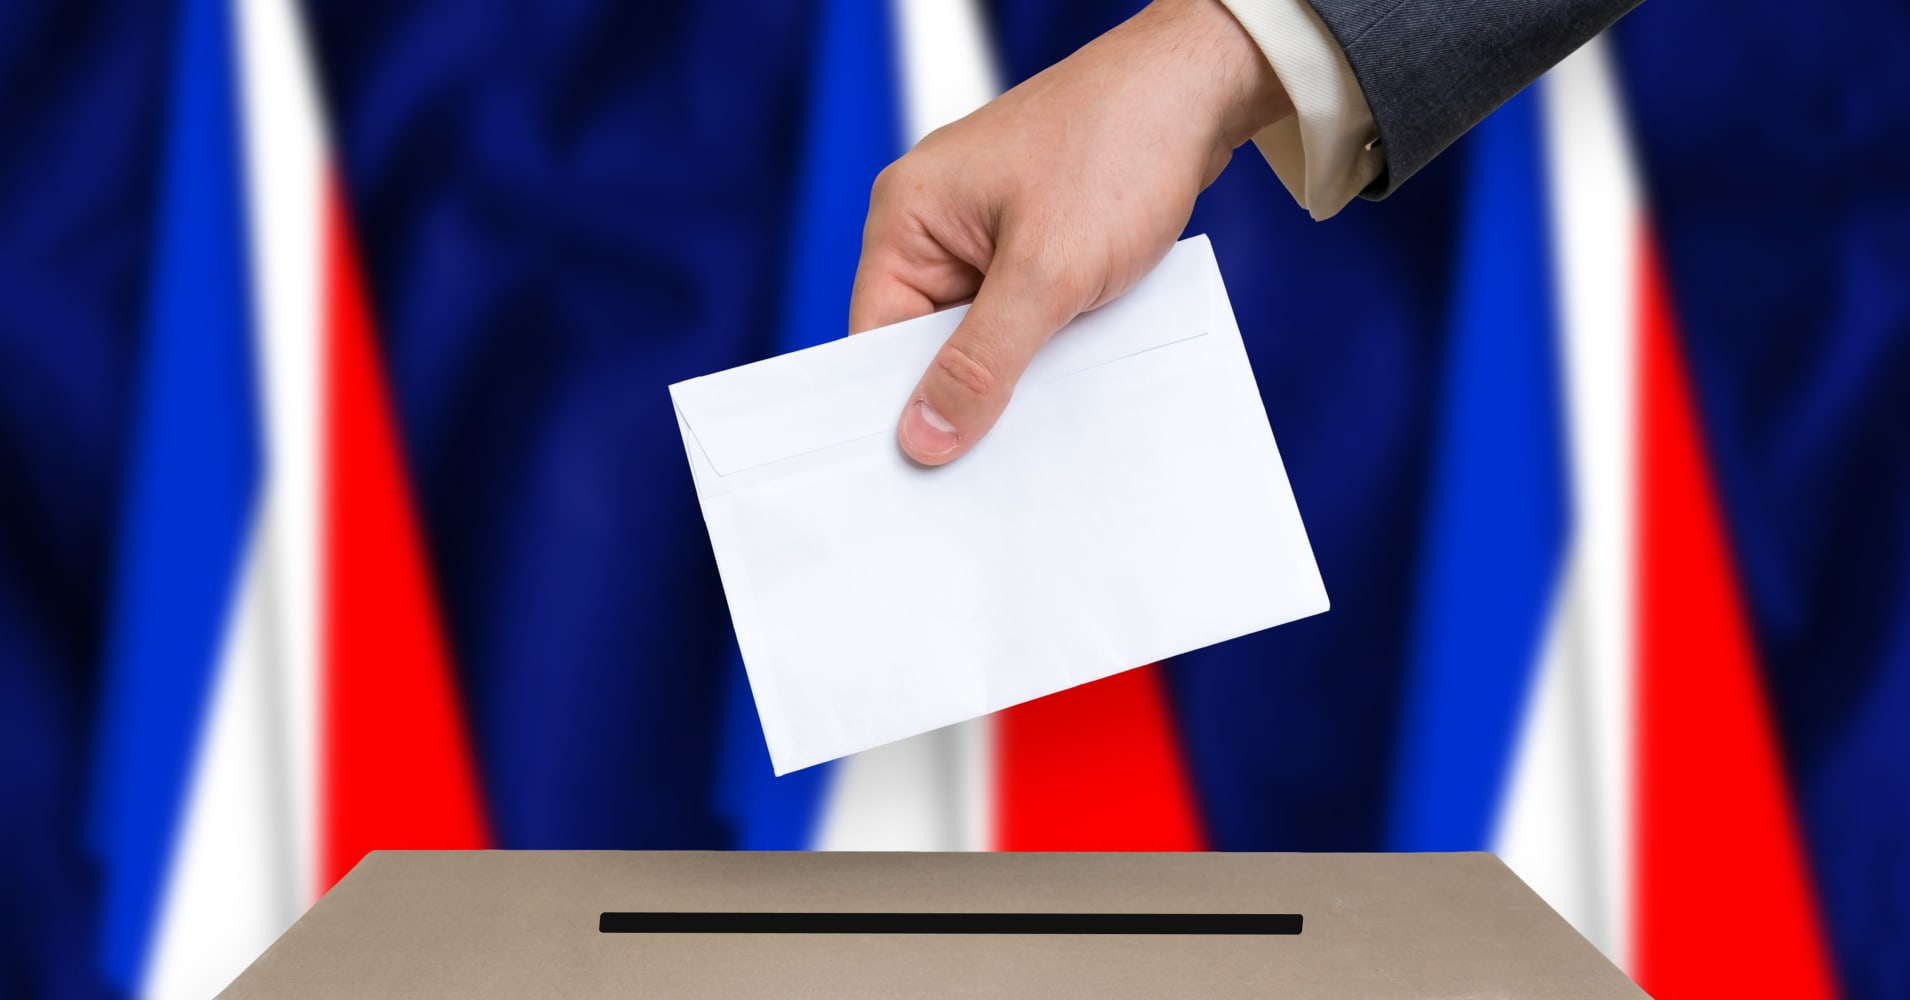 Watch CNBC's coverage of the first round of France's presidential election